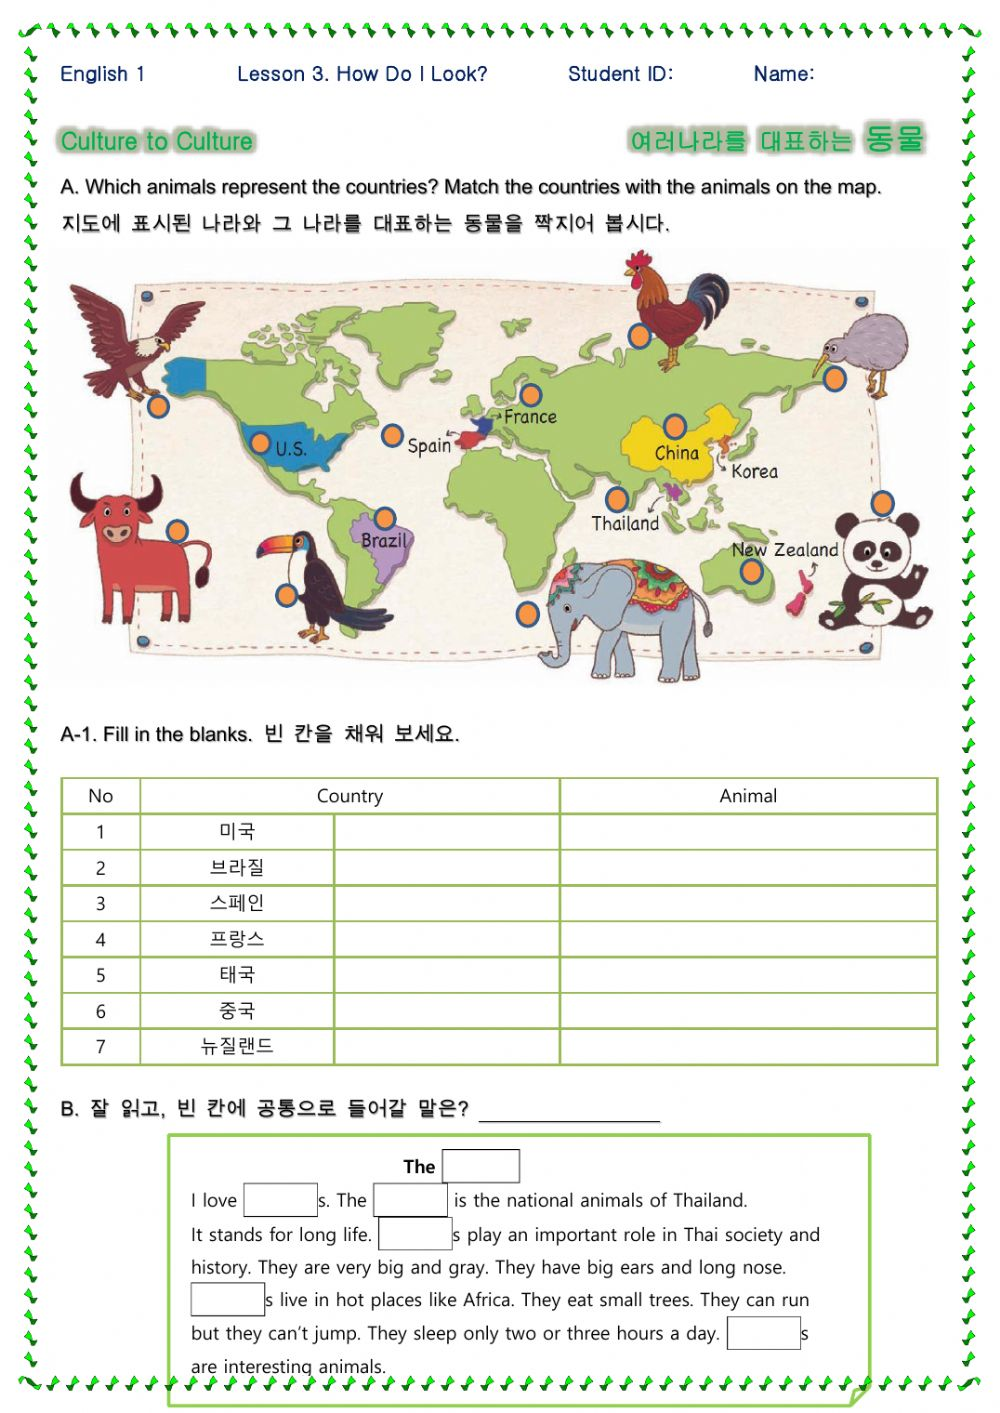 medium resolution of Animals representing the countries worksheet